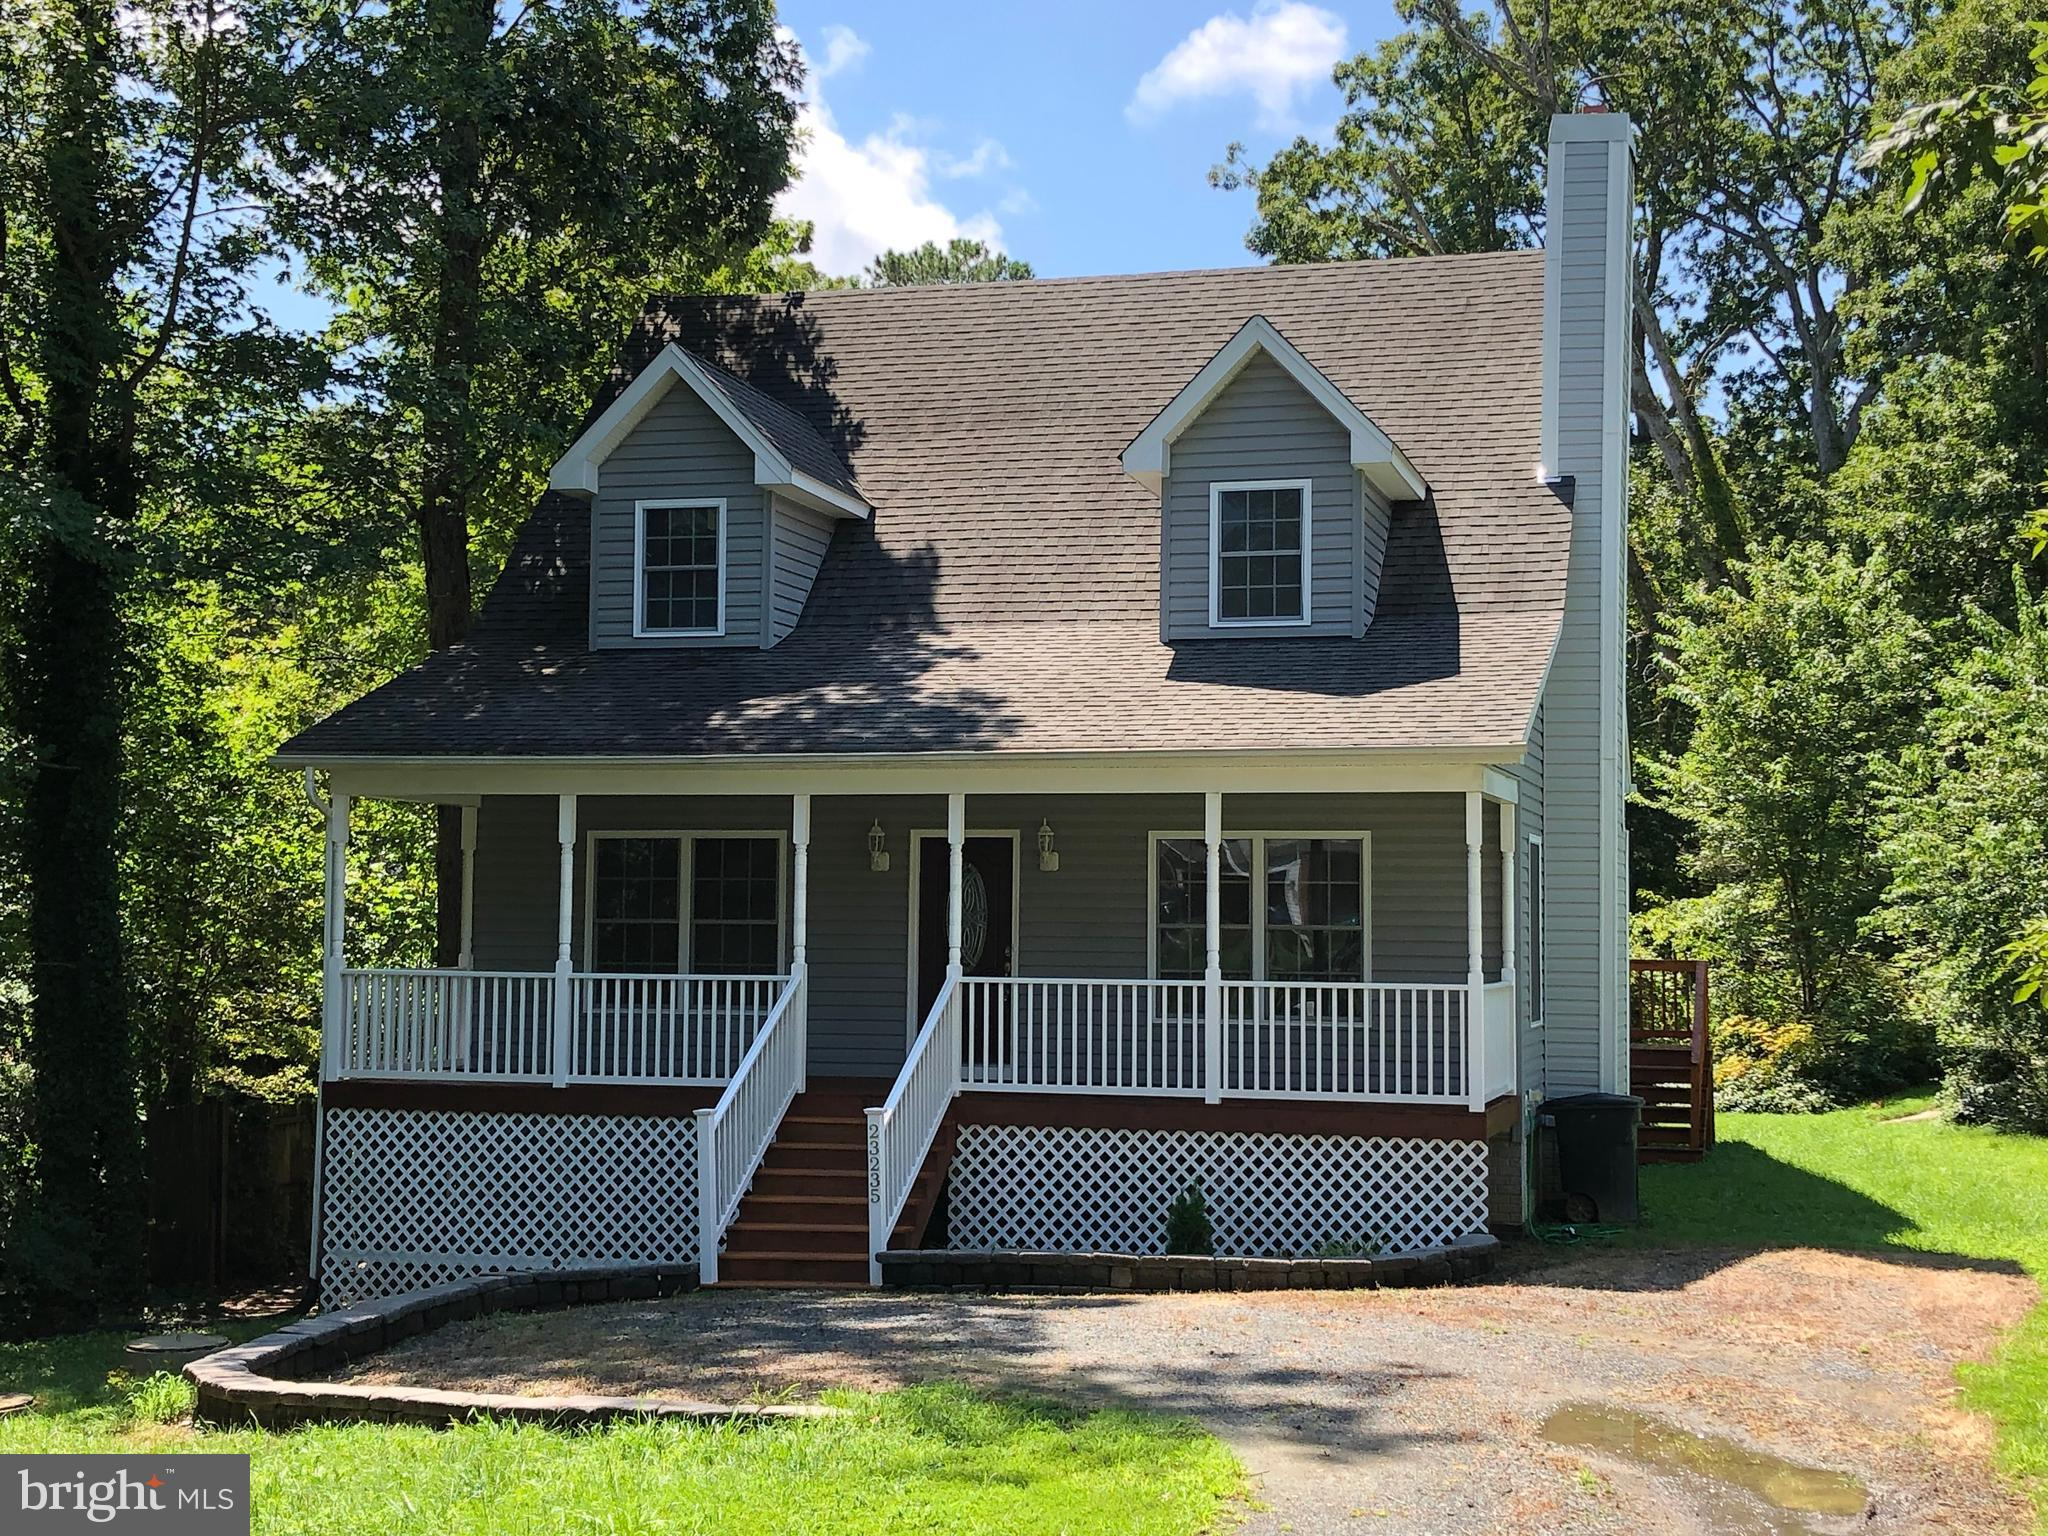 MAIN LEVEL MASTER SUITE! LOVELY CAPE COD -3 Bed / 2.5 Bath on  little over 1 acre to call your own within minutes to all the shopping centers & Pax River Base. COVERED PORCH, SPACIOUS OPEN Floor-plan, WOOD FIREPLACE, UPGRADED kitchen w/ SS Appliances, Double SS Sink, Laundry Room w/ FRONT LOADING Washer & Dryer, MAIN FLOOR MASTER SUITE!! (Hard to find!)  GORGEOUS master bath w/ SOAKING TUB, SEPARATE TILED SHOWER STALL.  FULL unfinished basement w/ roughed-in plumbing and separate entrance.  Home looks nicer in person - pics don't due it justice!  Have your pre-approval ready because this home is MOVE-IN READY so get your showing scheduled ASAP so you don't MISS OUT on this one!!!